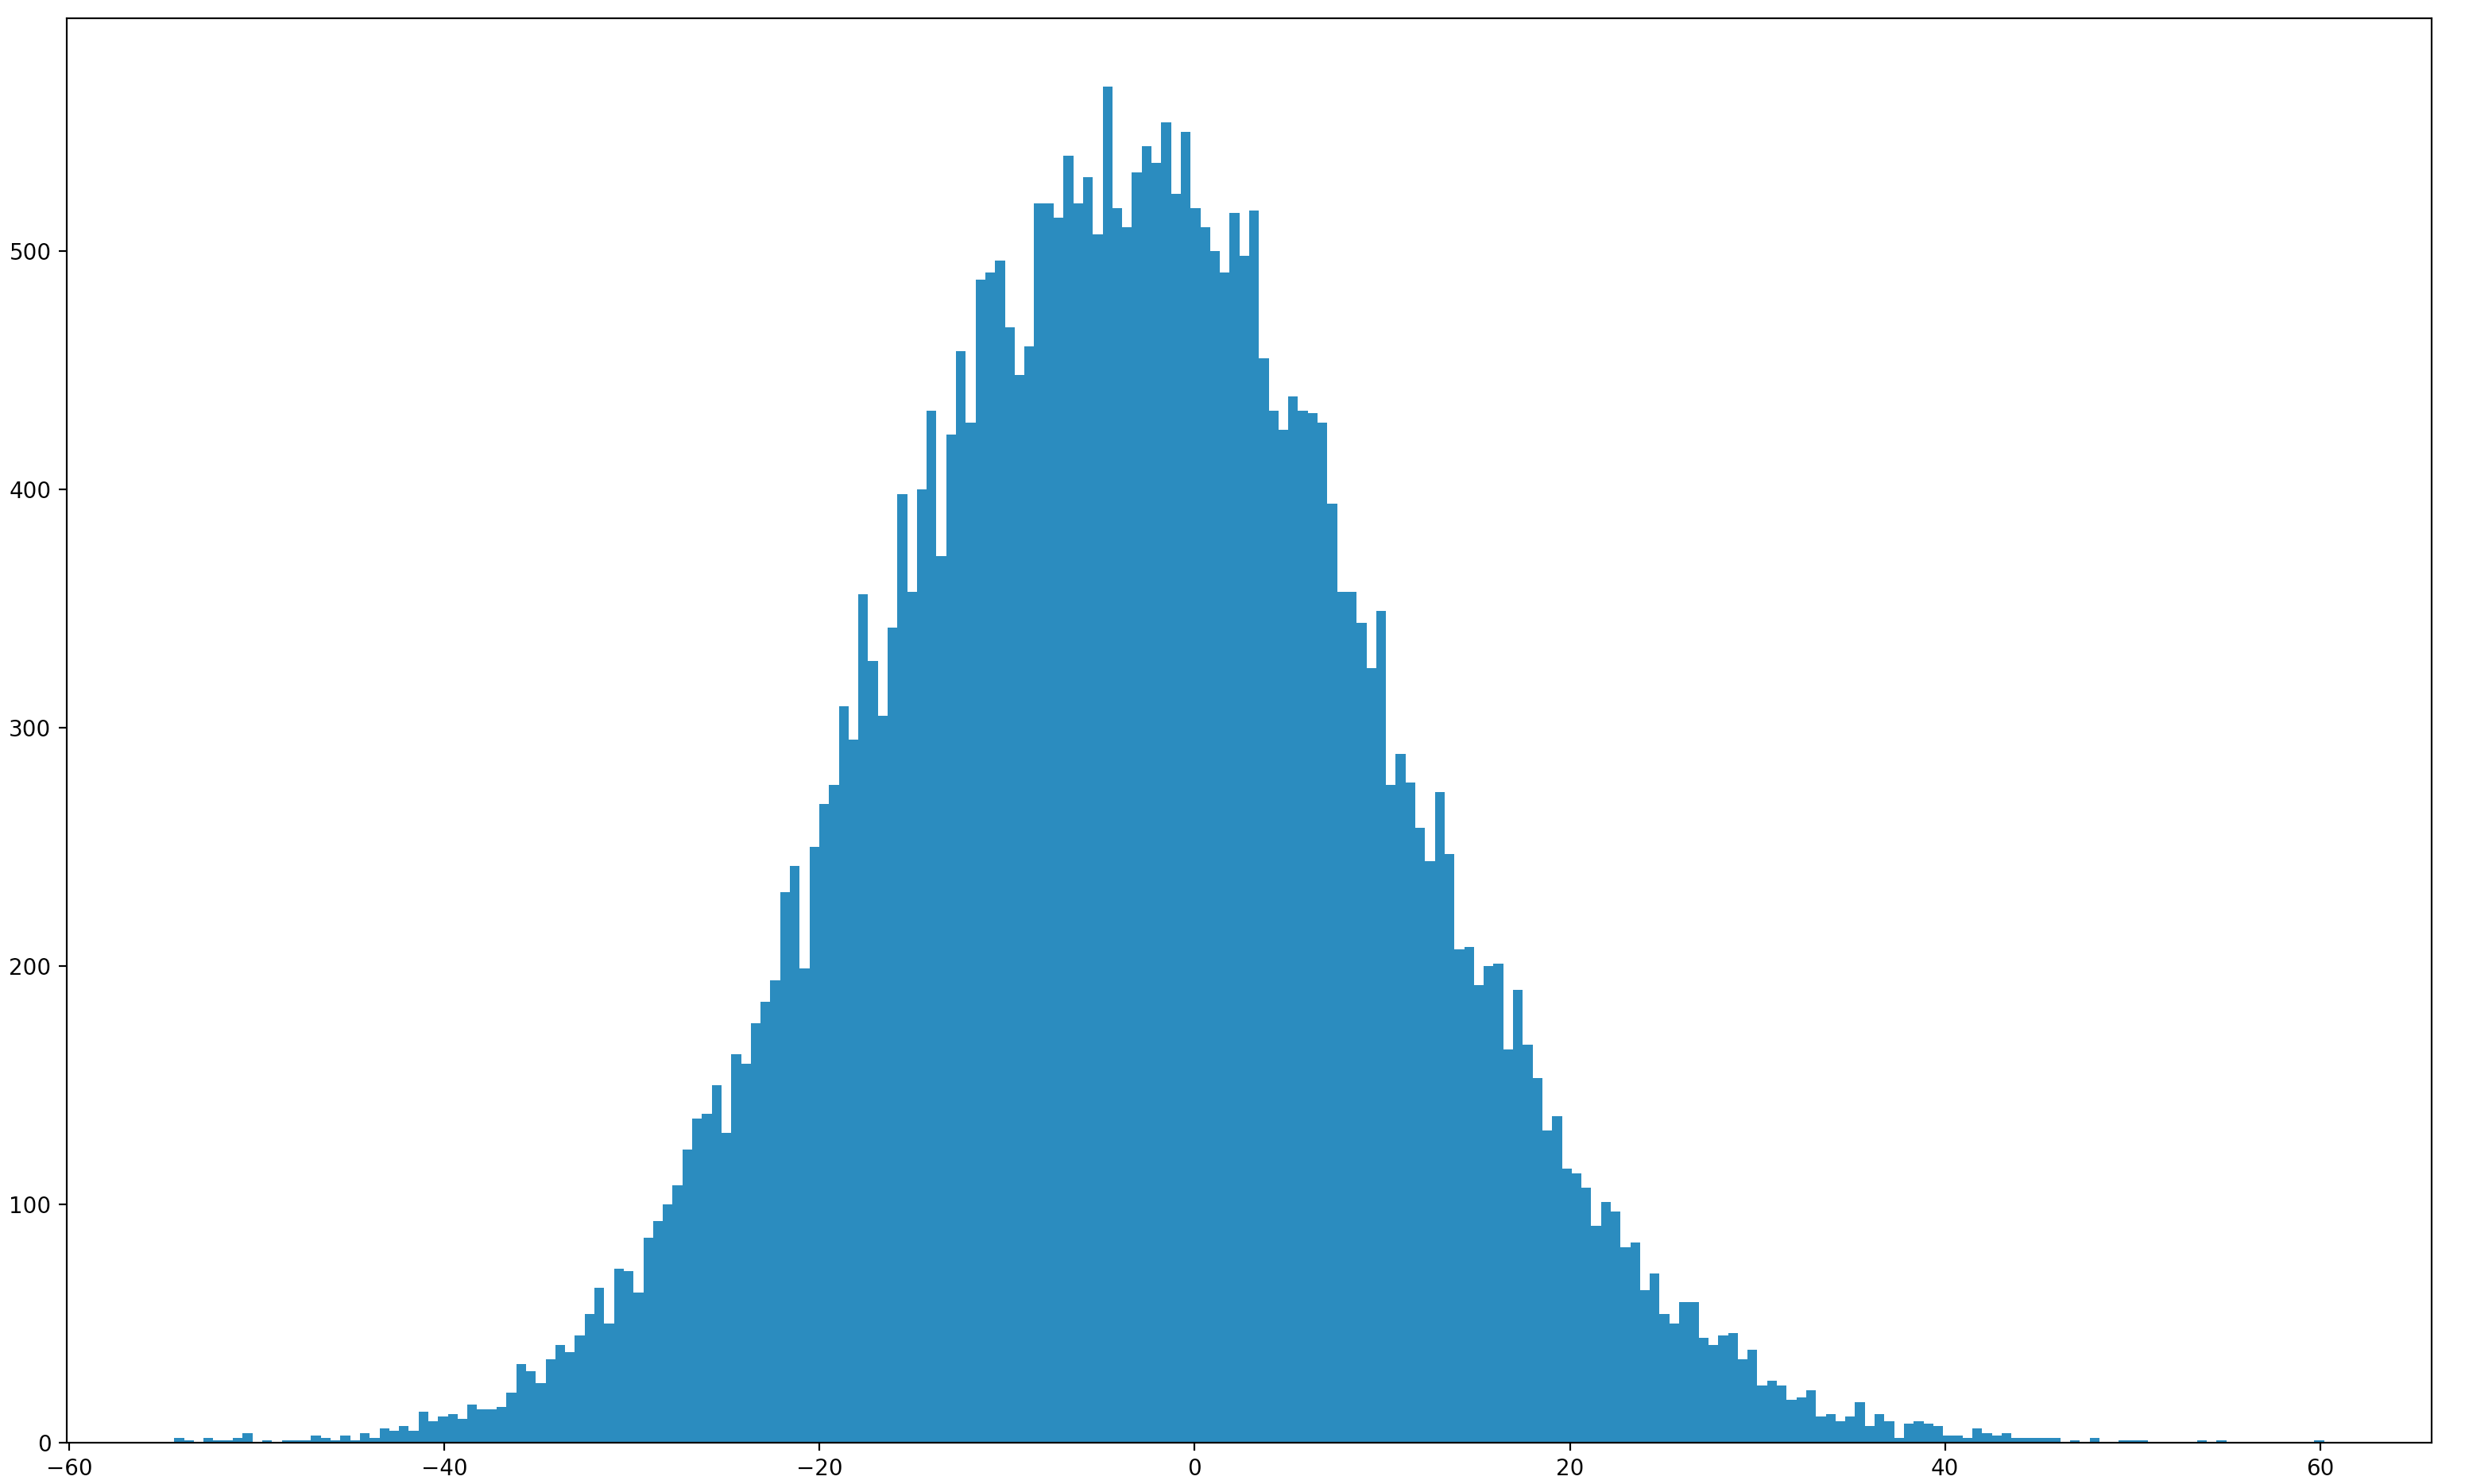 A histogram of the path energies ‐ the original motivation for the work